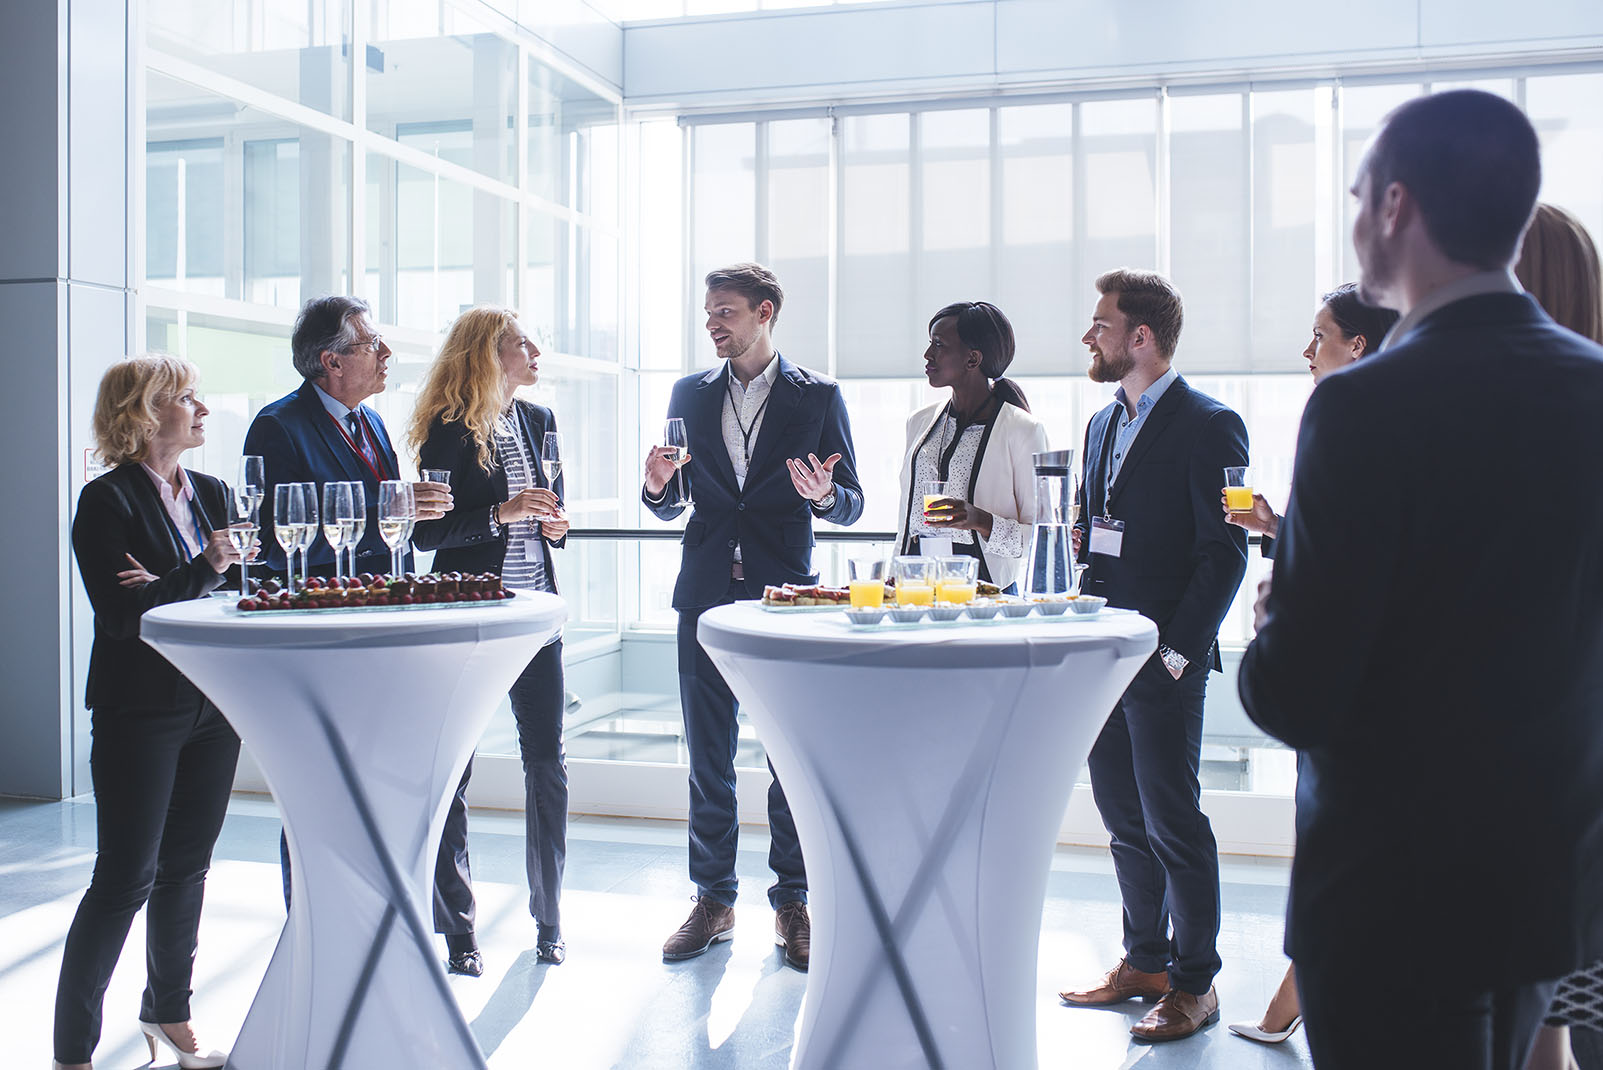 Business coworkers standing in a lobby. They are looking at each other and holding glasses of champagne and juice.